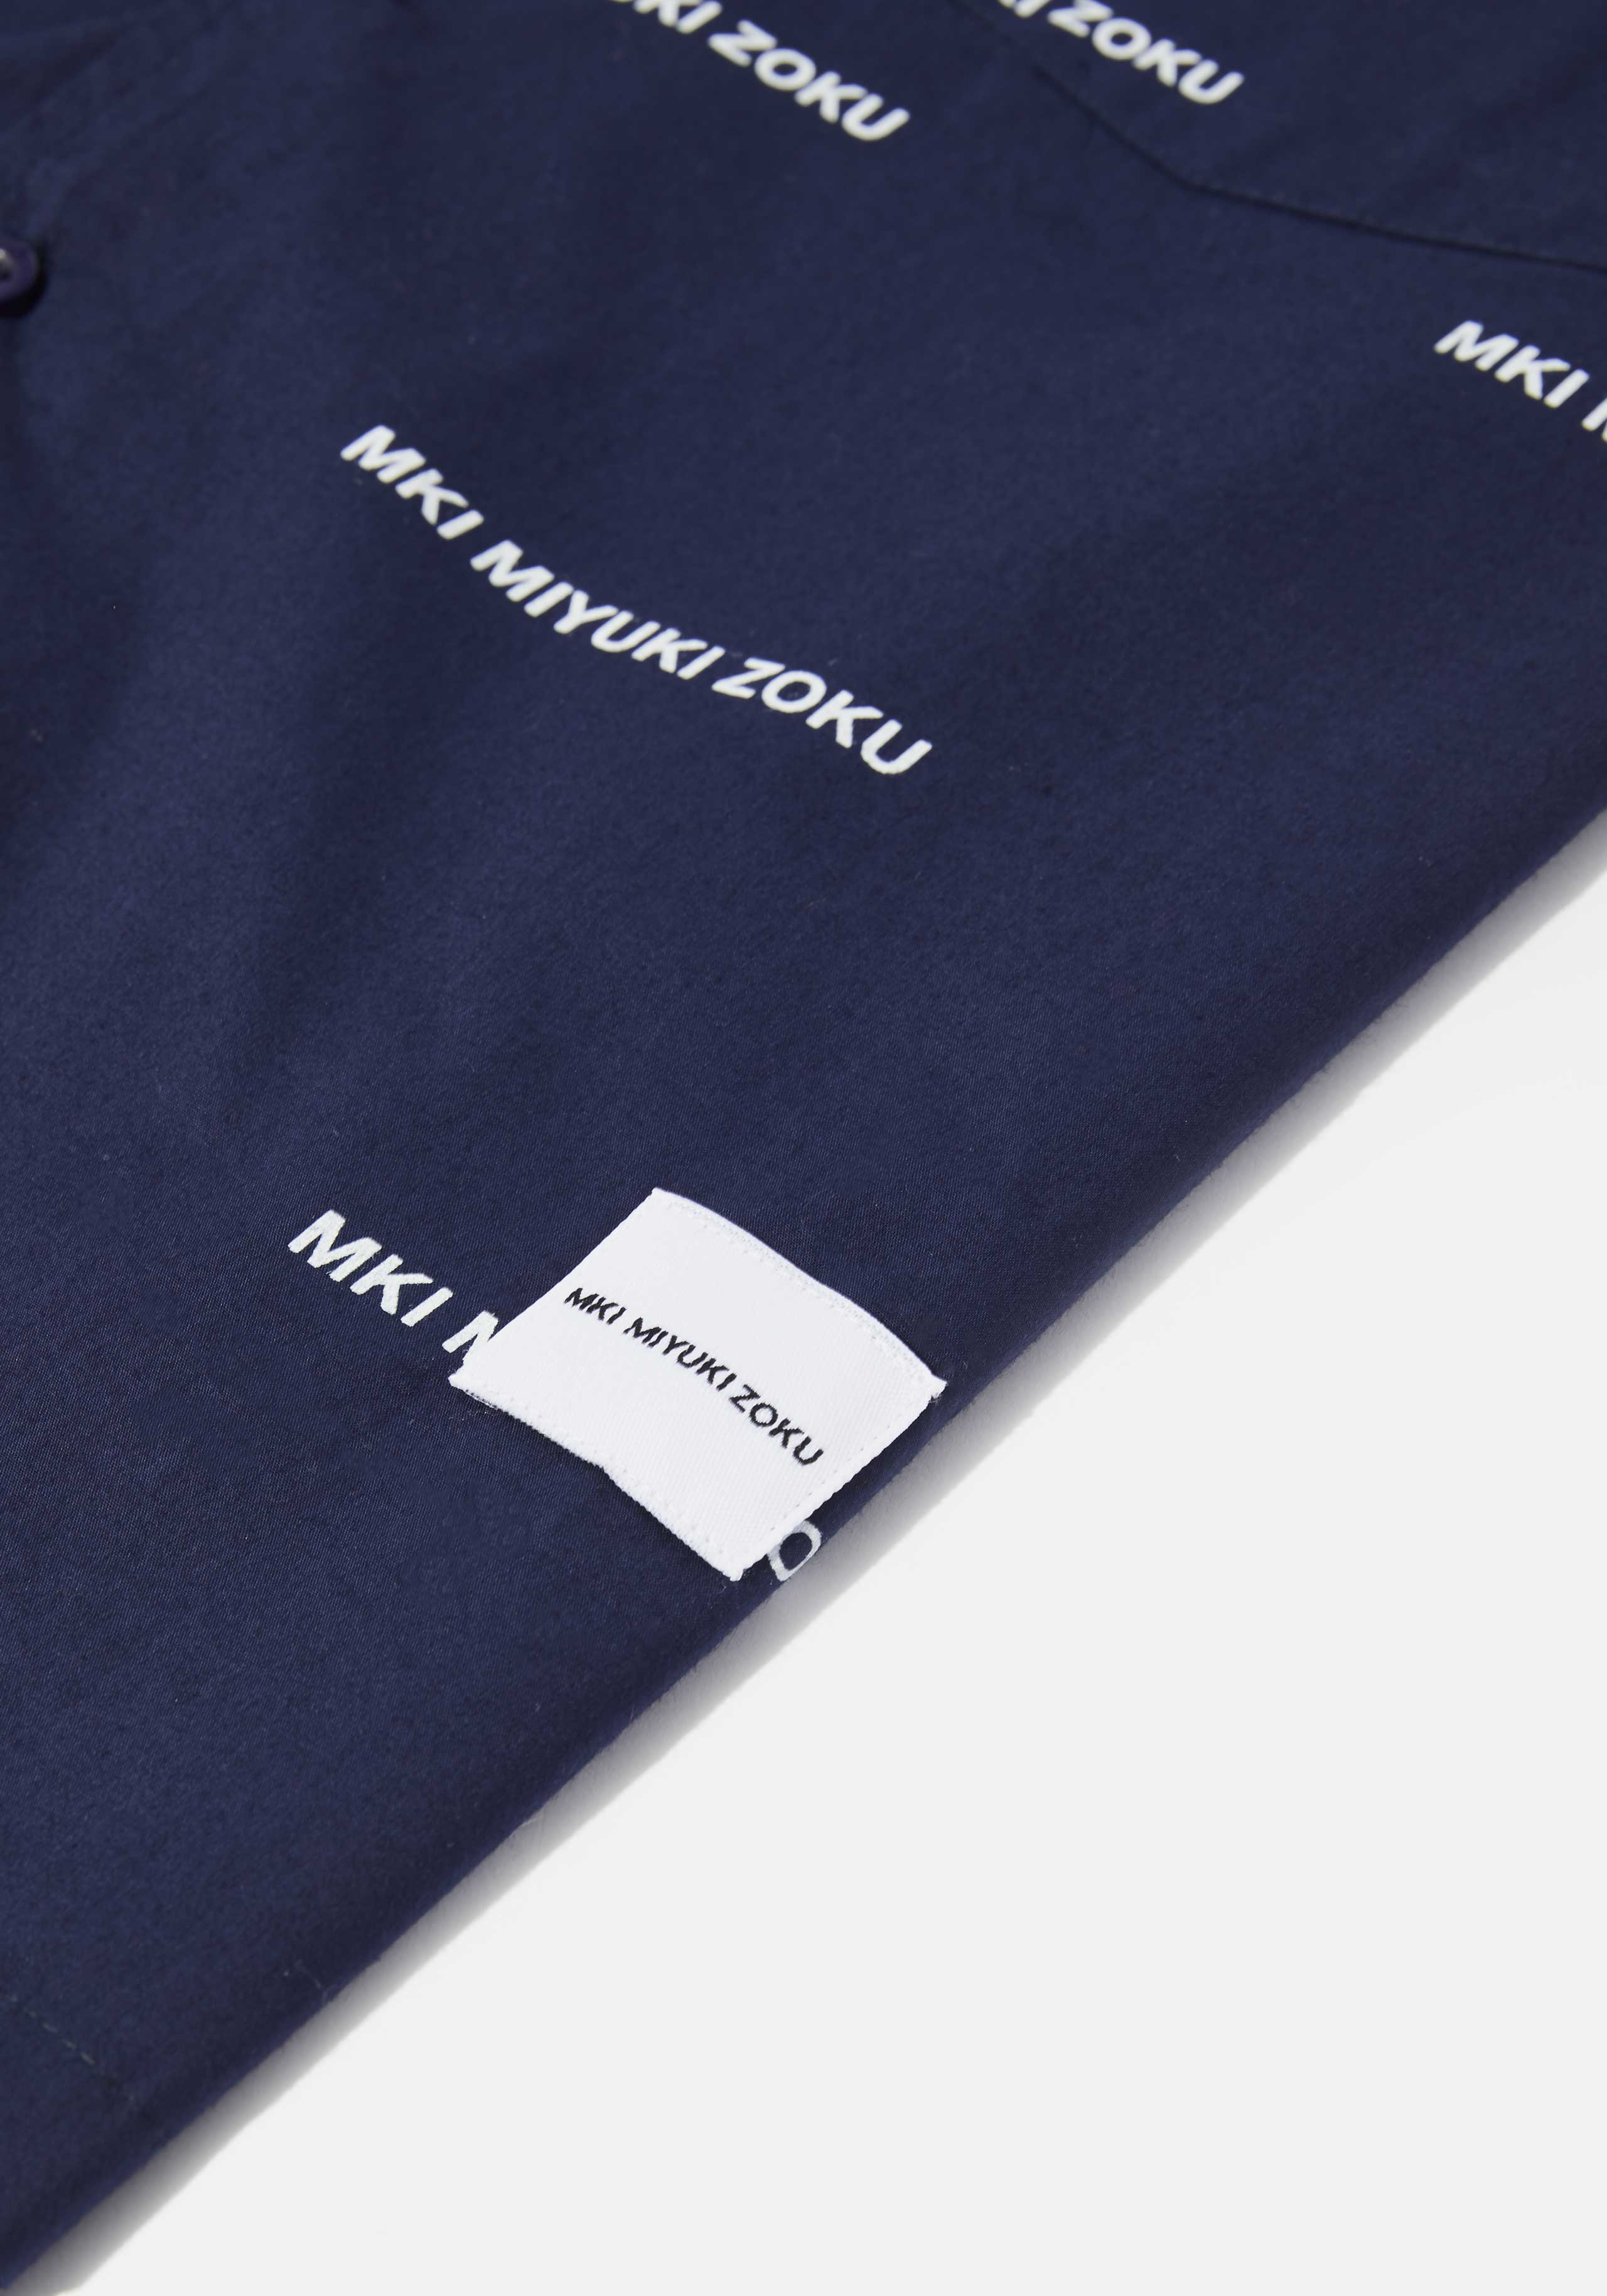 mki logo vacation shirt 5